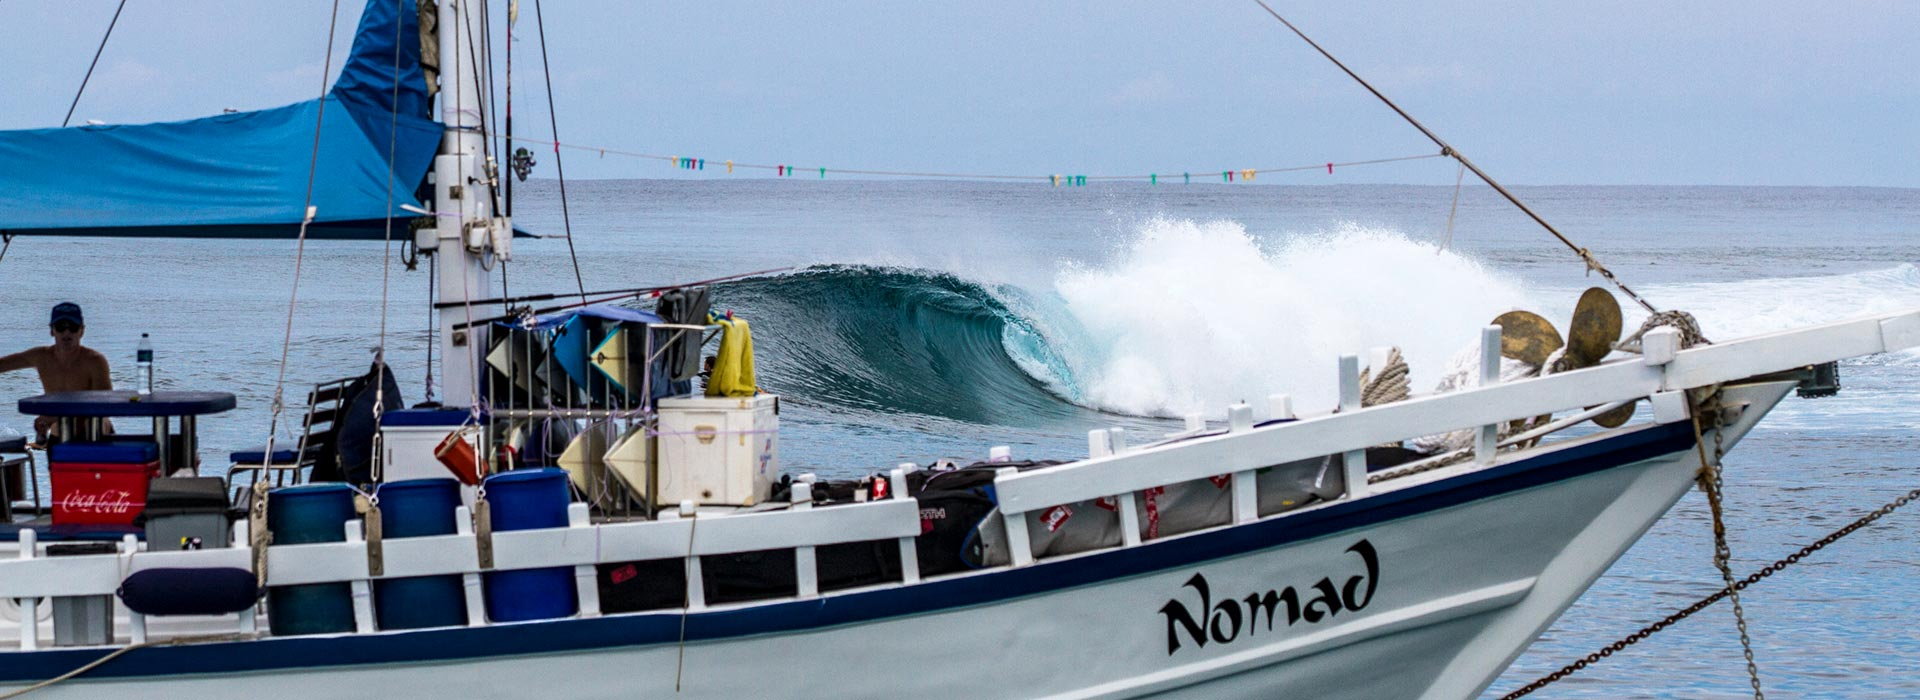 nomad-surf-charters-1